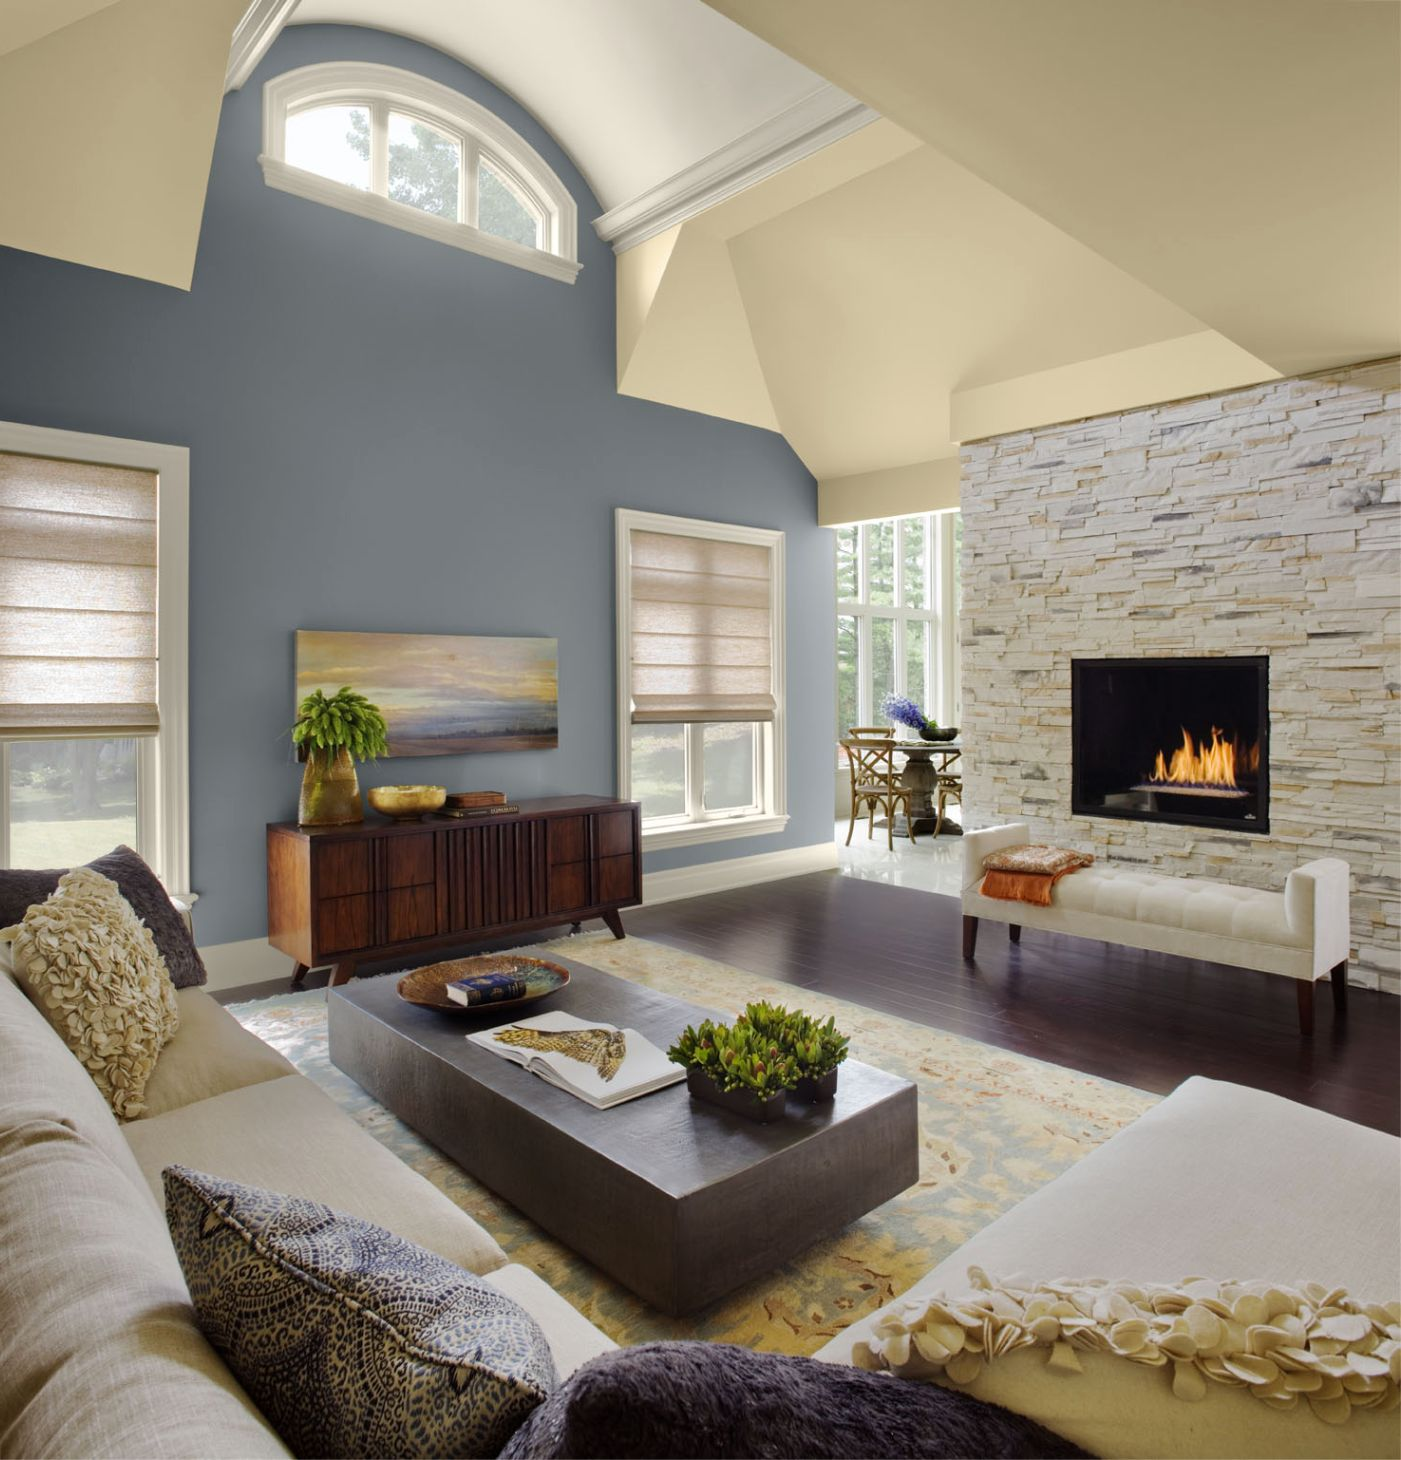 Stunning view of vaulted ceiling decorating ideas for homes Vaulted ceiling decorating ideas